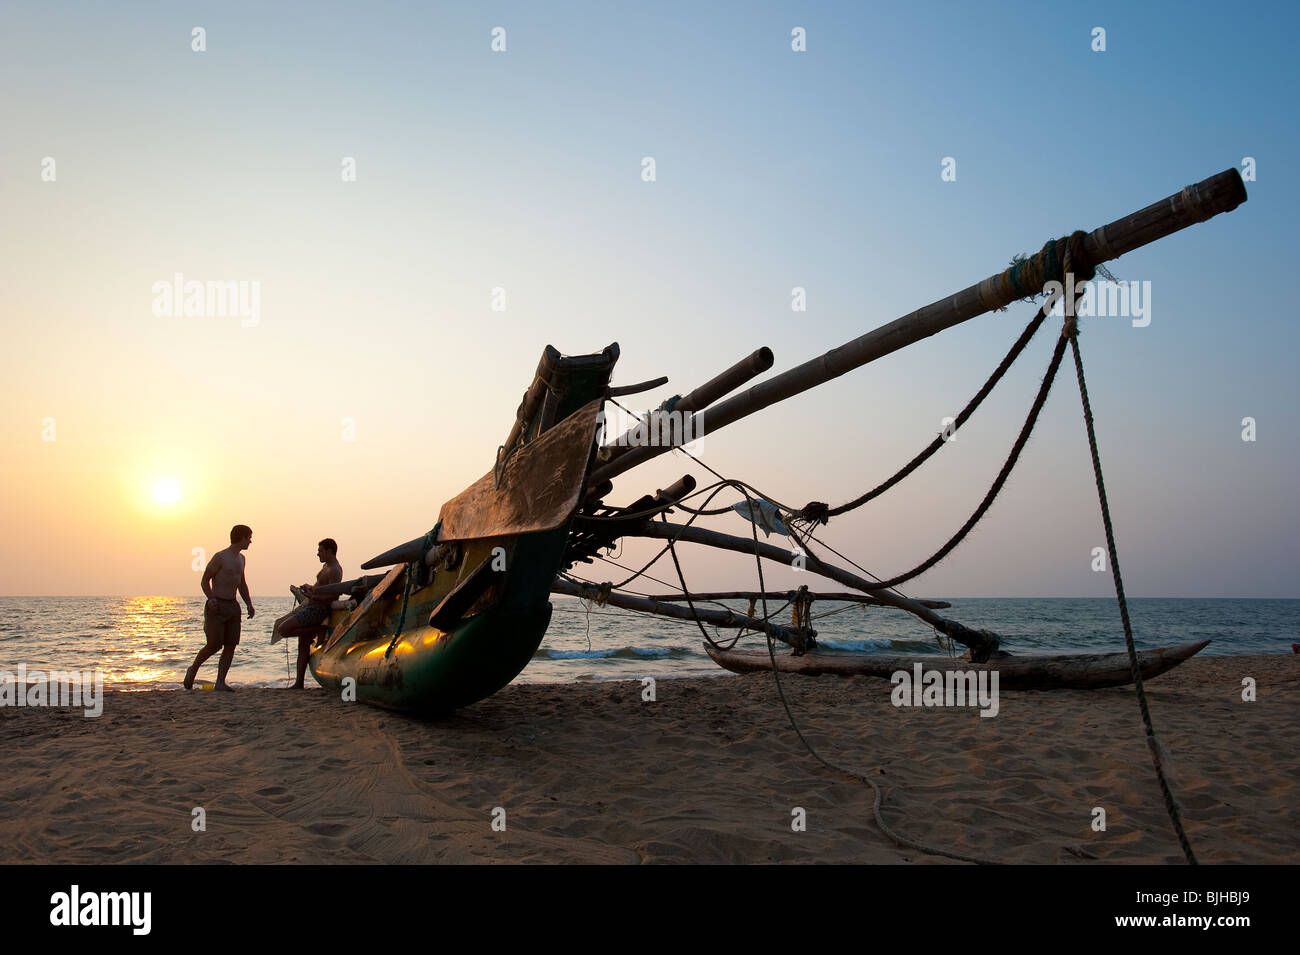 Sunset with Catamaran, Negombo Beach, Sri Lanka - Stock Image